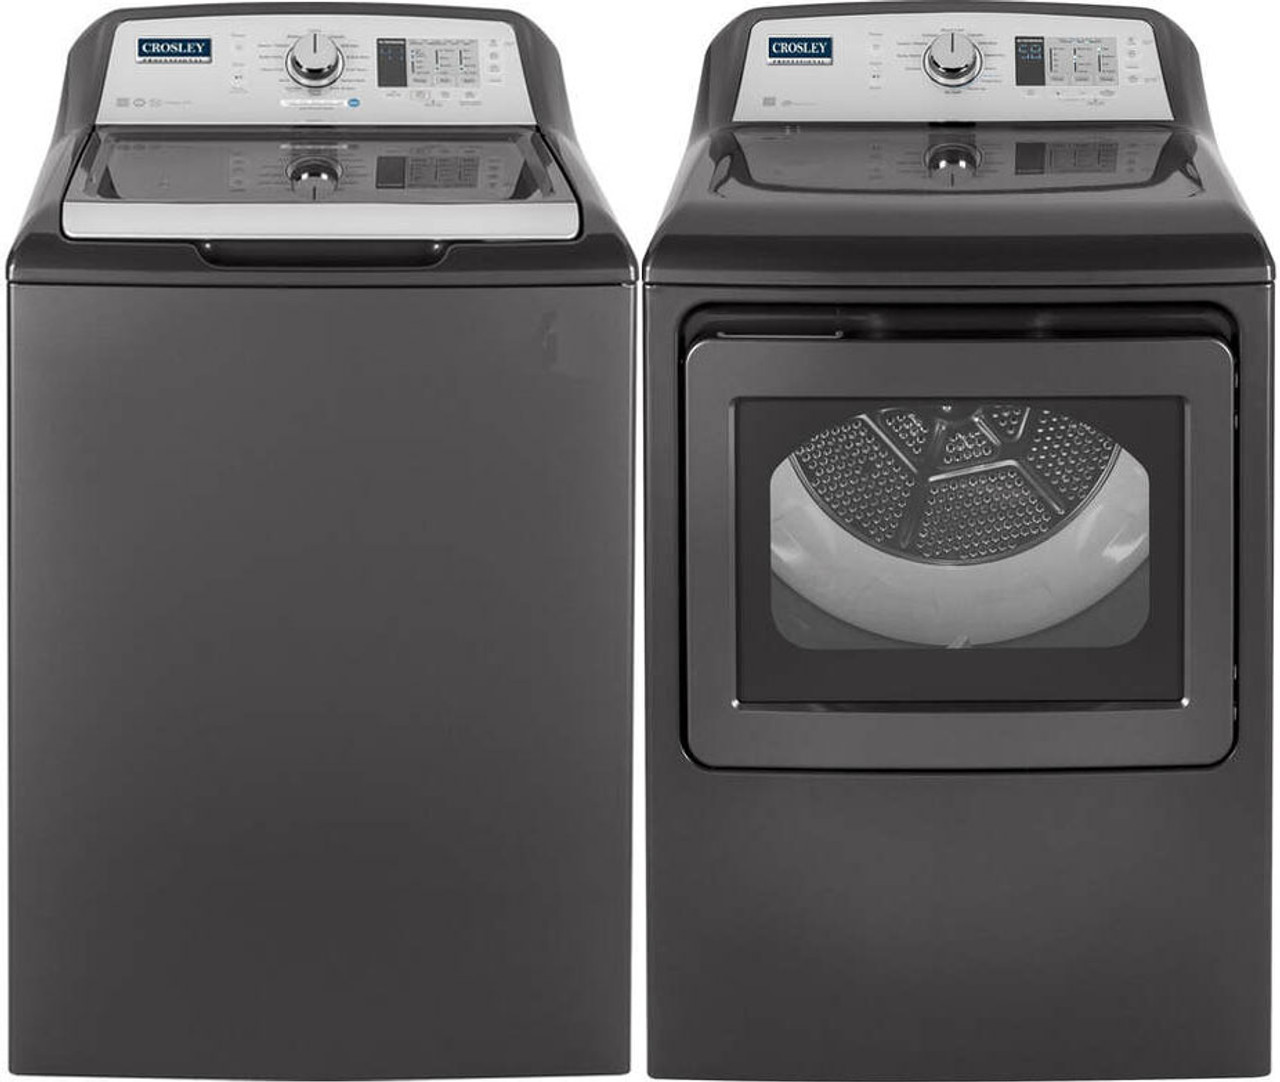 Crosley Professional 4 5 Washer Dryer For Sale Or Rent At Bargain Center Serving Southeatern Kansas Northeastern Oklahoma And Northwest Arkansas